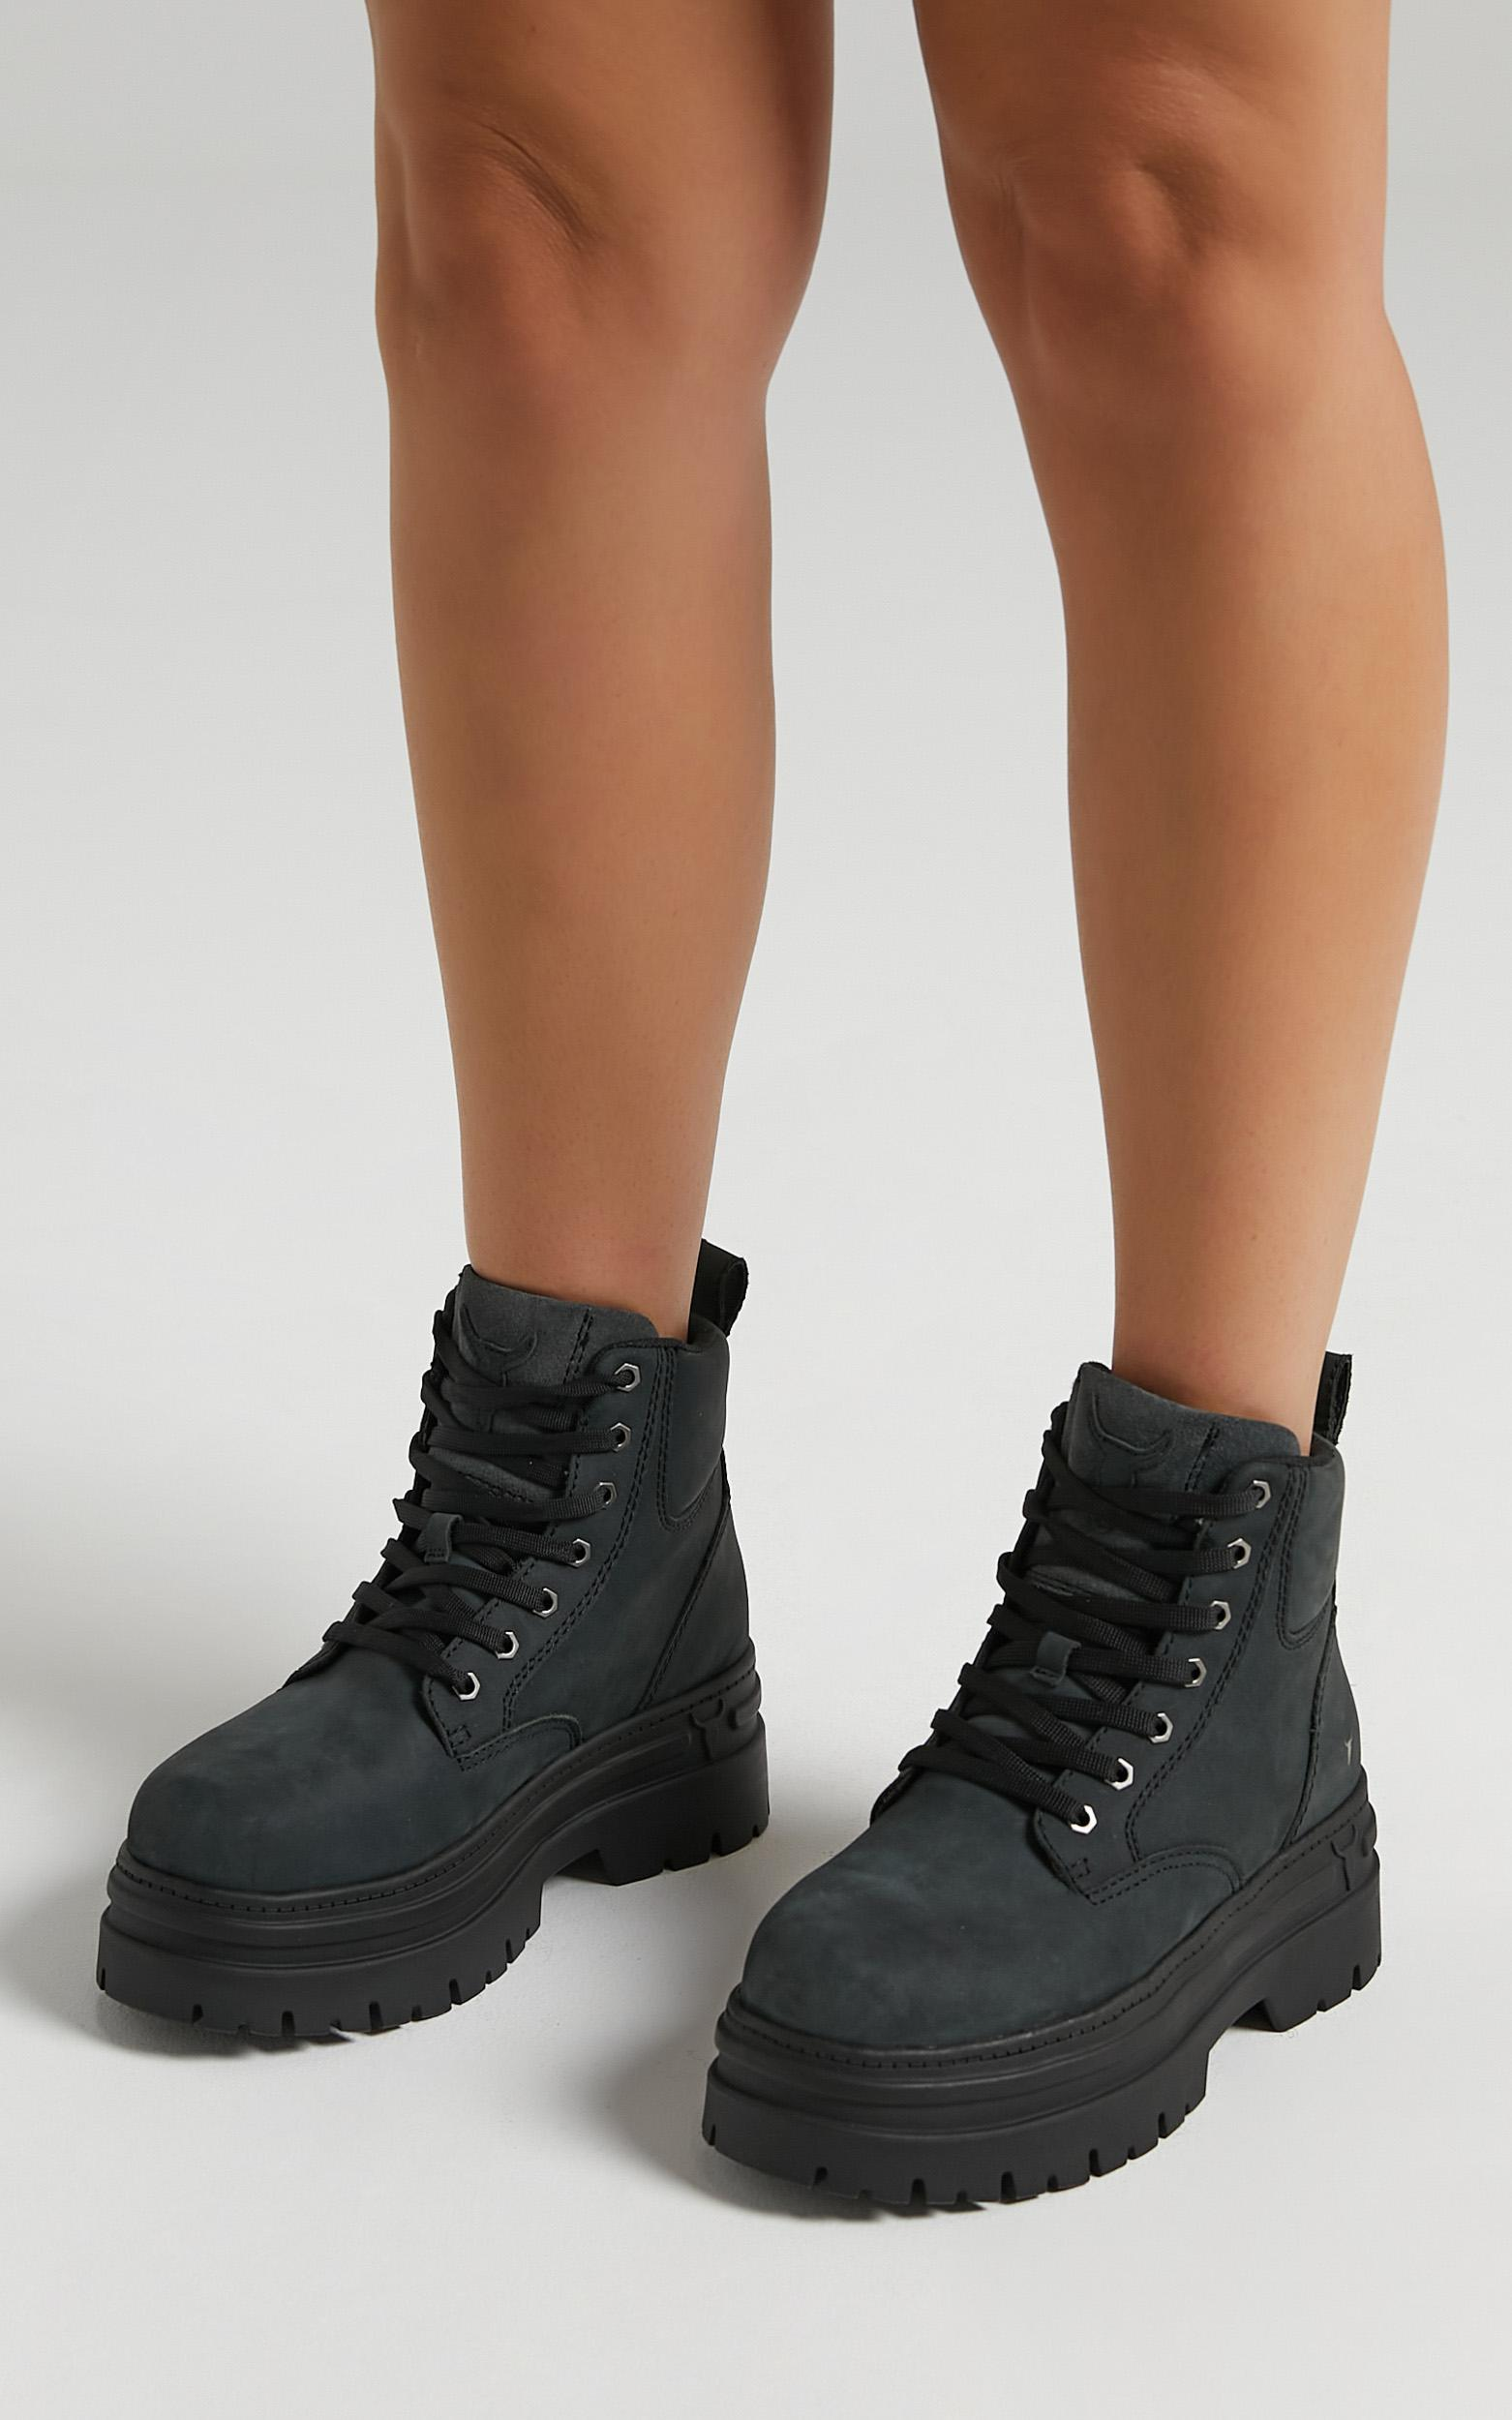 Windsor Smith - Attitude Boots in Charcoal Nubuck - 6, Black, hi-res image number null